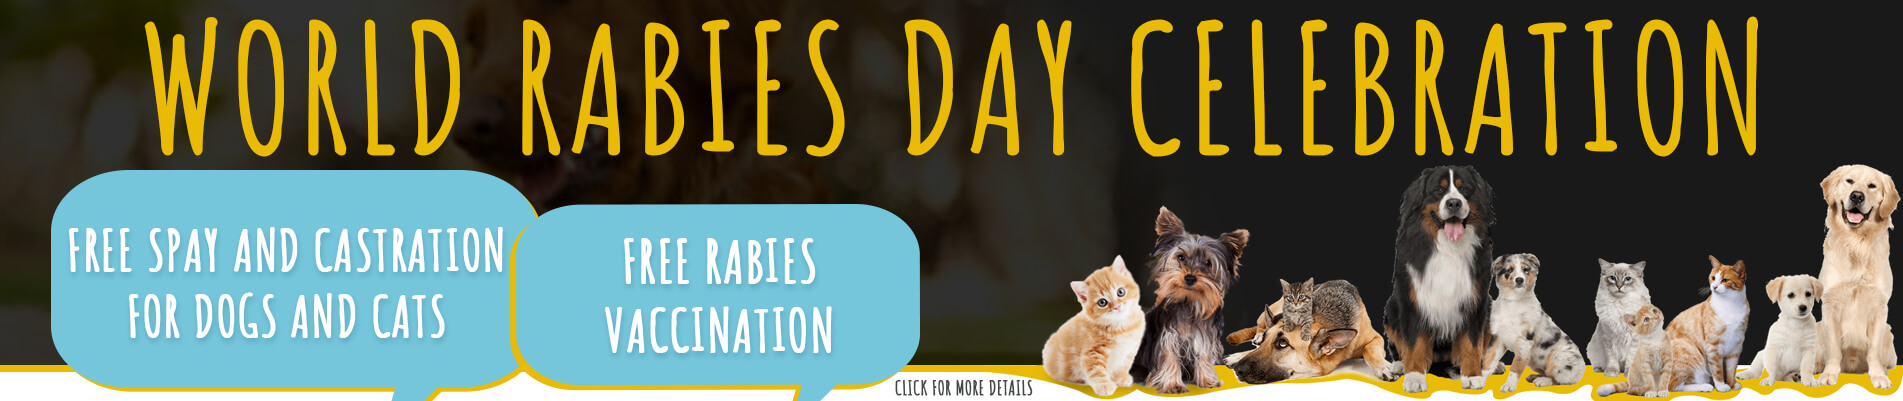 World Rabies Day Celebration